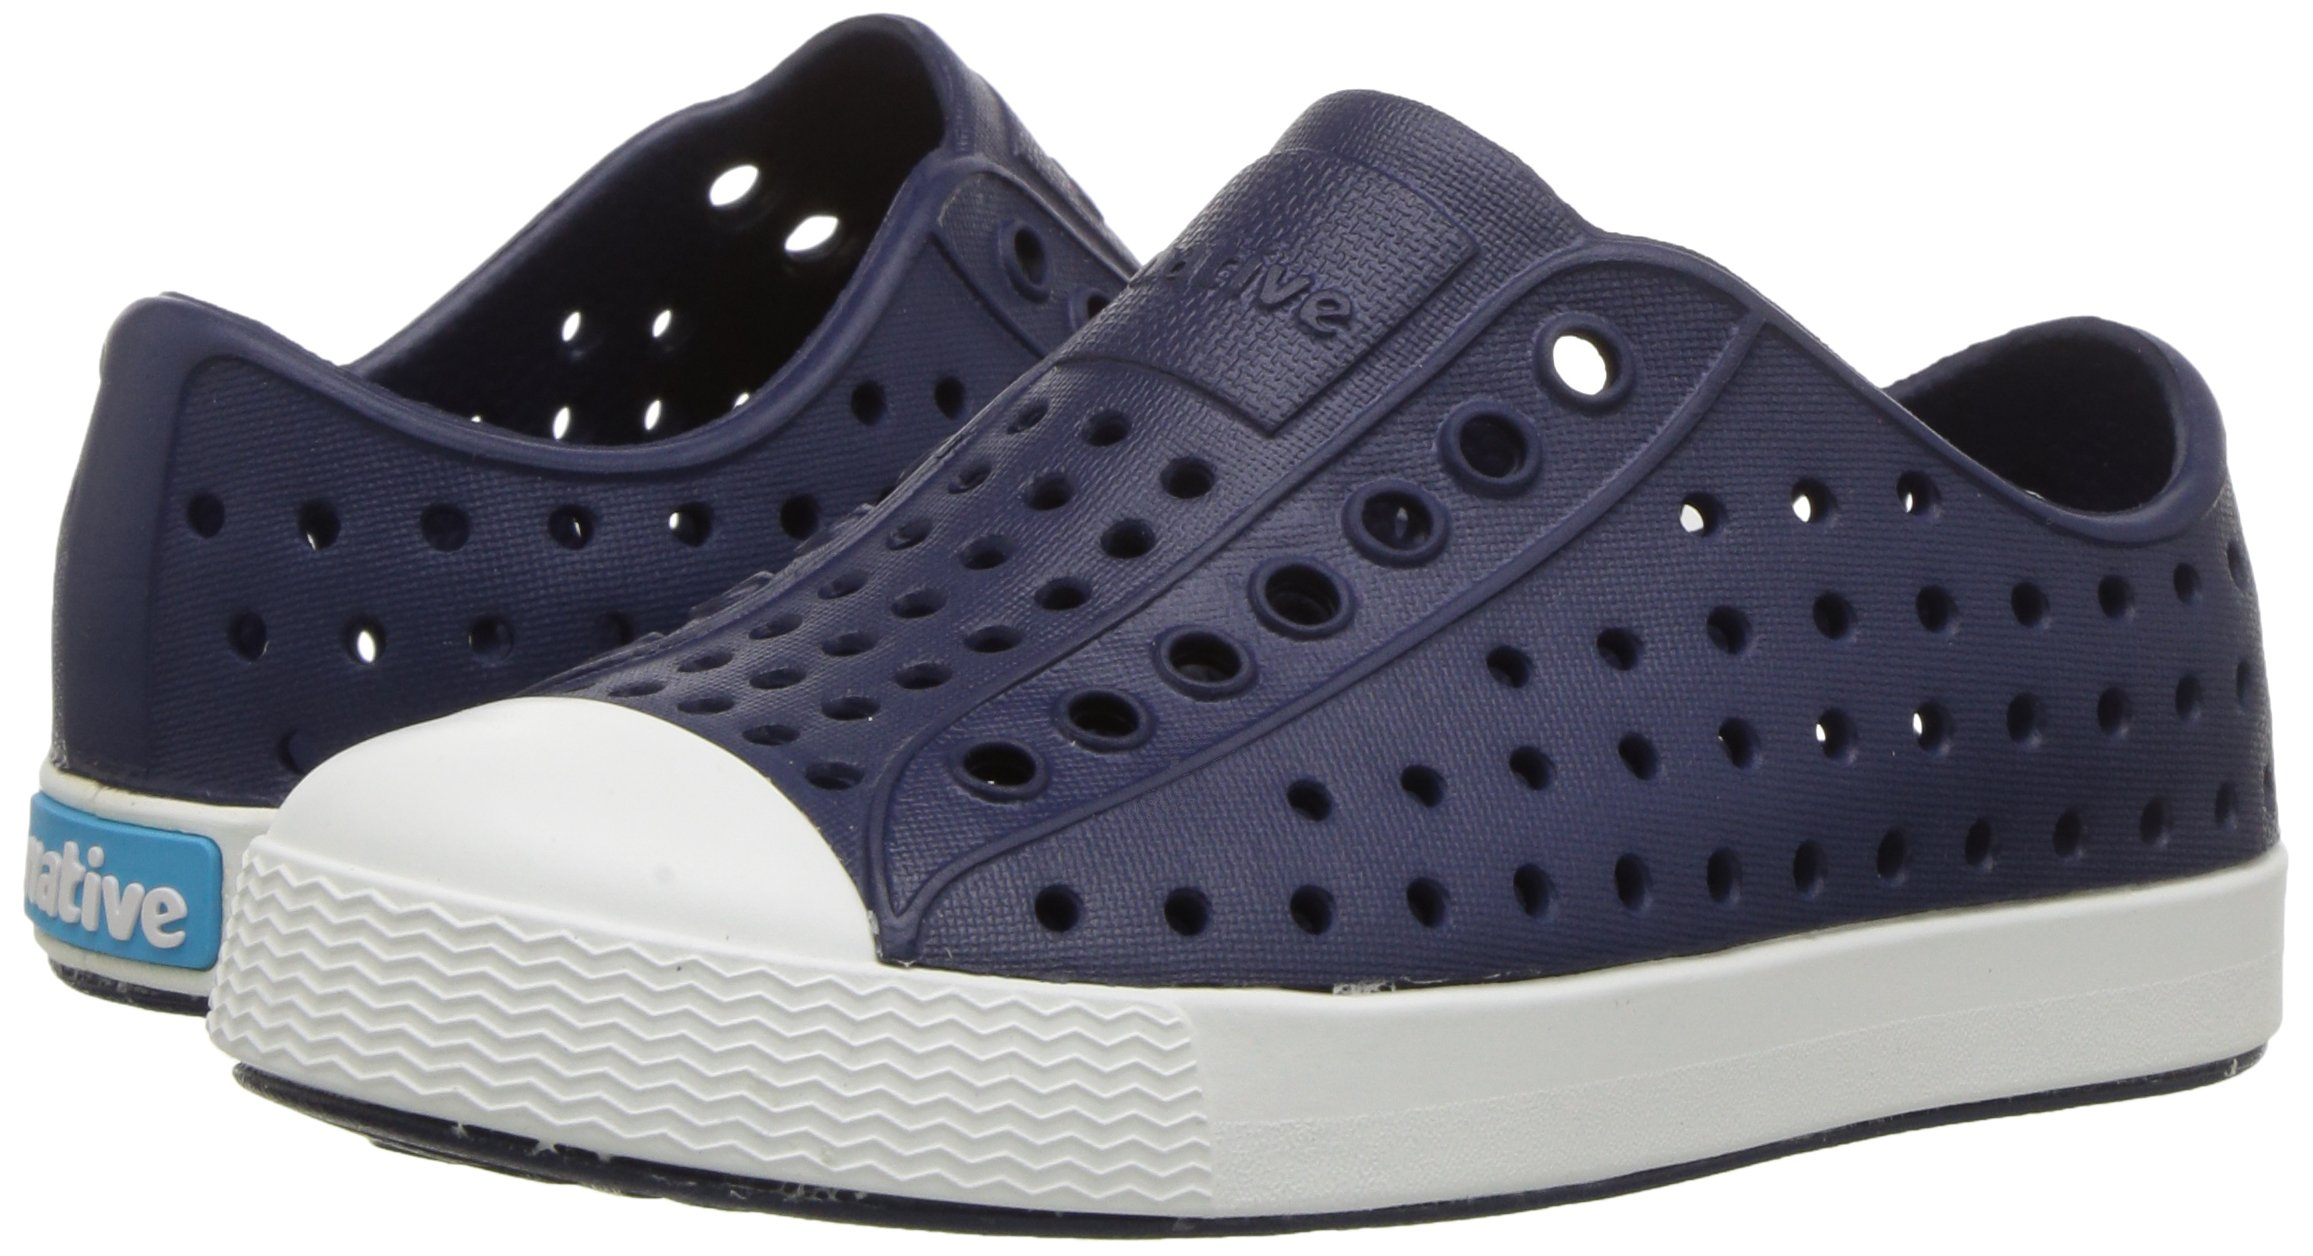 native Kids Jefferson Child Water Proof Shoes, Regatta Blue/Shell White, 6 Medium US Toddler by native (Image #6)